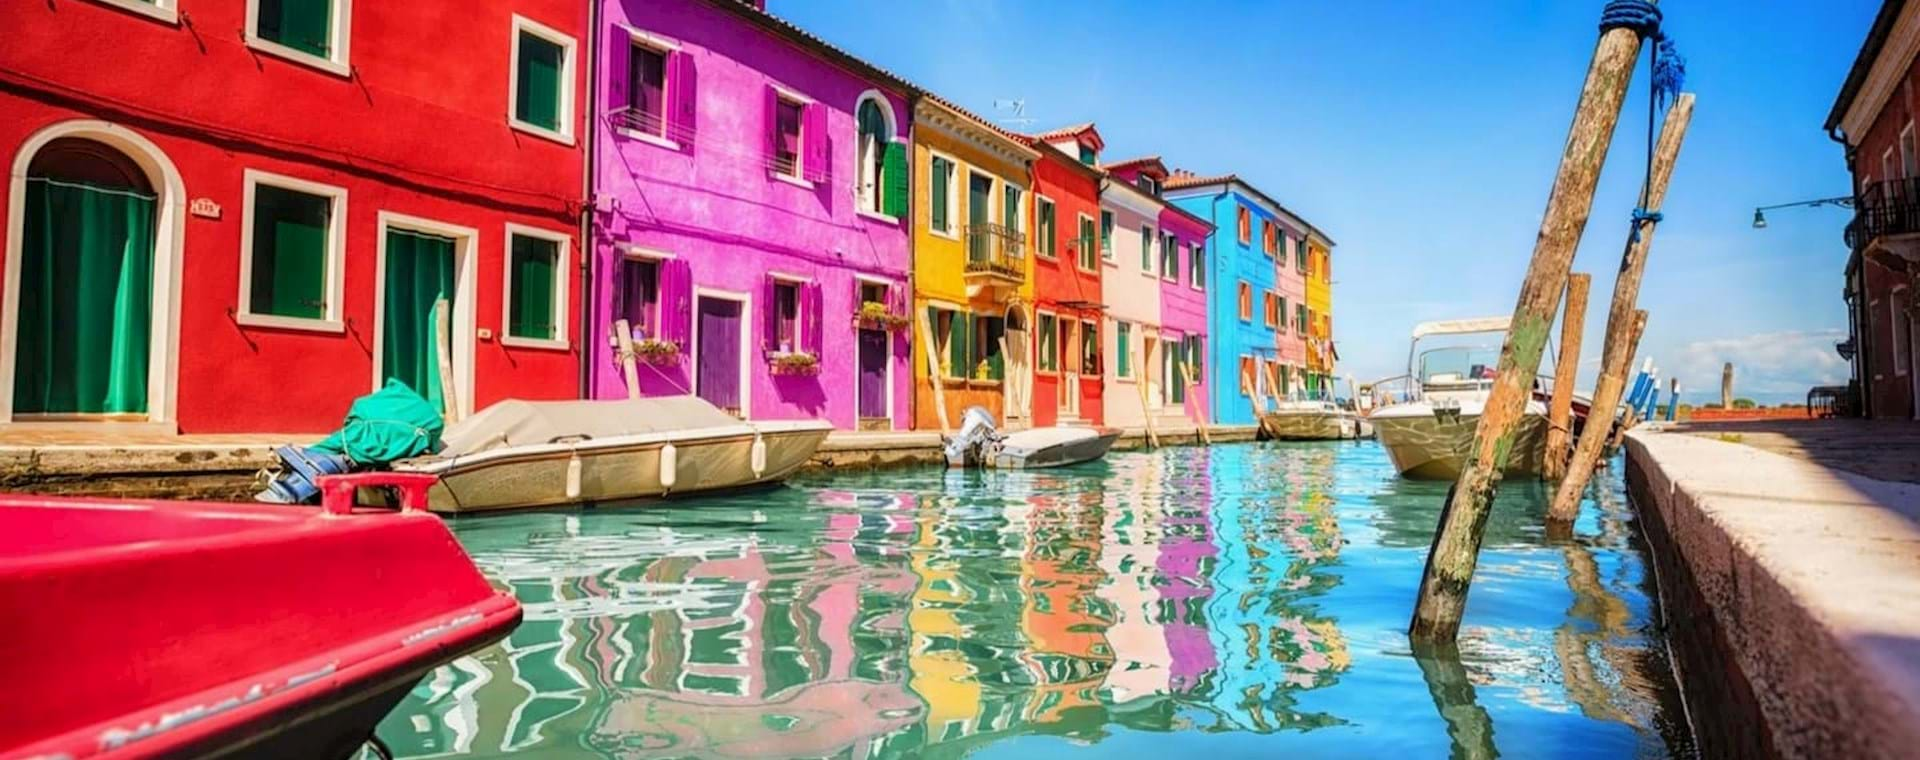 Private Half Day Venetian Islands: Murano Glassblowing and Burano Lacemaking